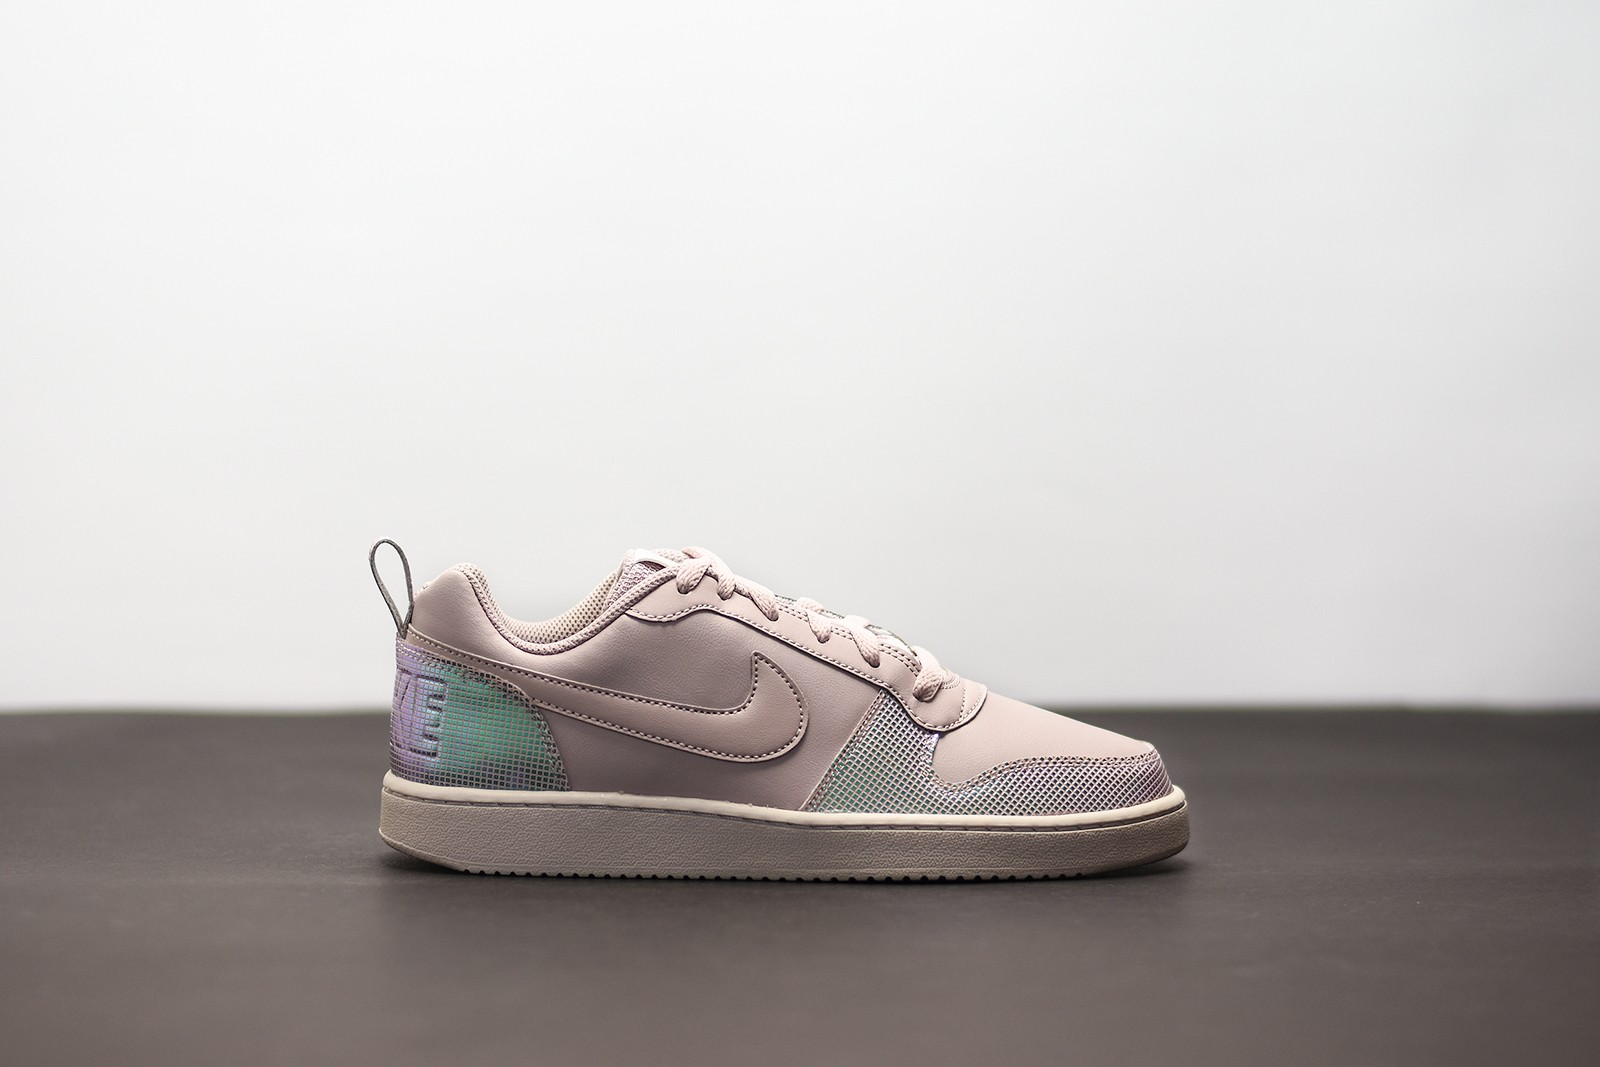 WMNS NIKE COURT BOROUGH SE